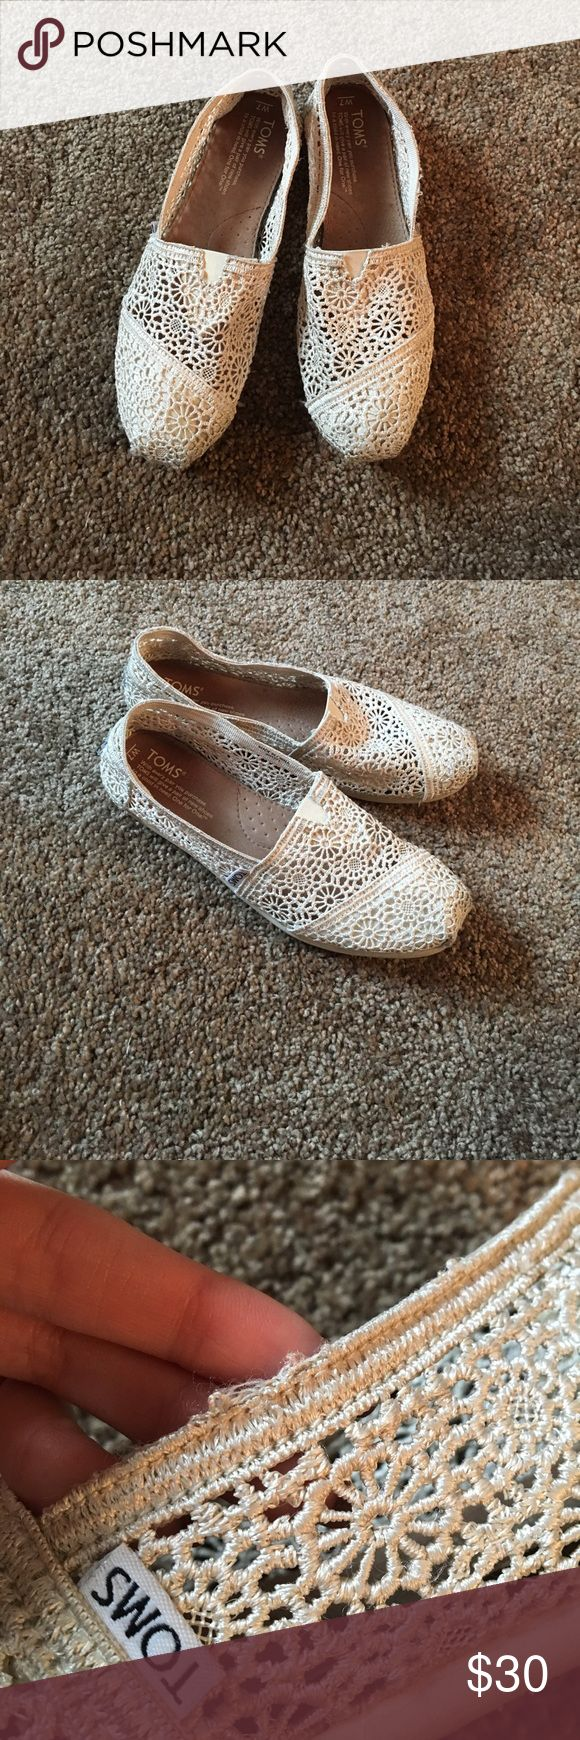 Crochet toms Cream colored crochet toms. In very good condition; only wore them a handful of times because they are too big for me, got them as a gift. There is minimal wear on them, you can see in pictures there is a tiny fray on them but otherwise good condition. Super cute for spring!  Toms tend to stretch as you wear them so it's usually best to buy a half size to a size down TOMS Shoes Flats & Loafers